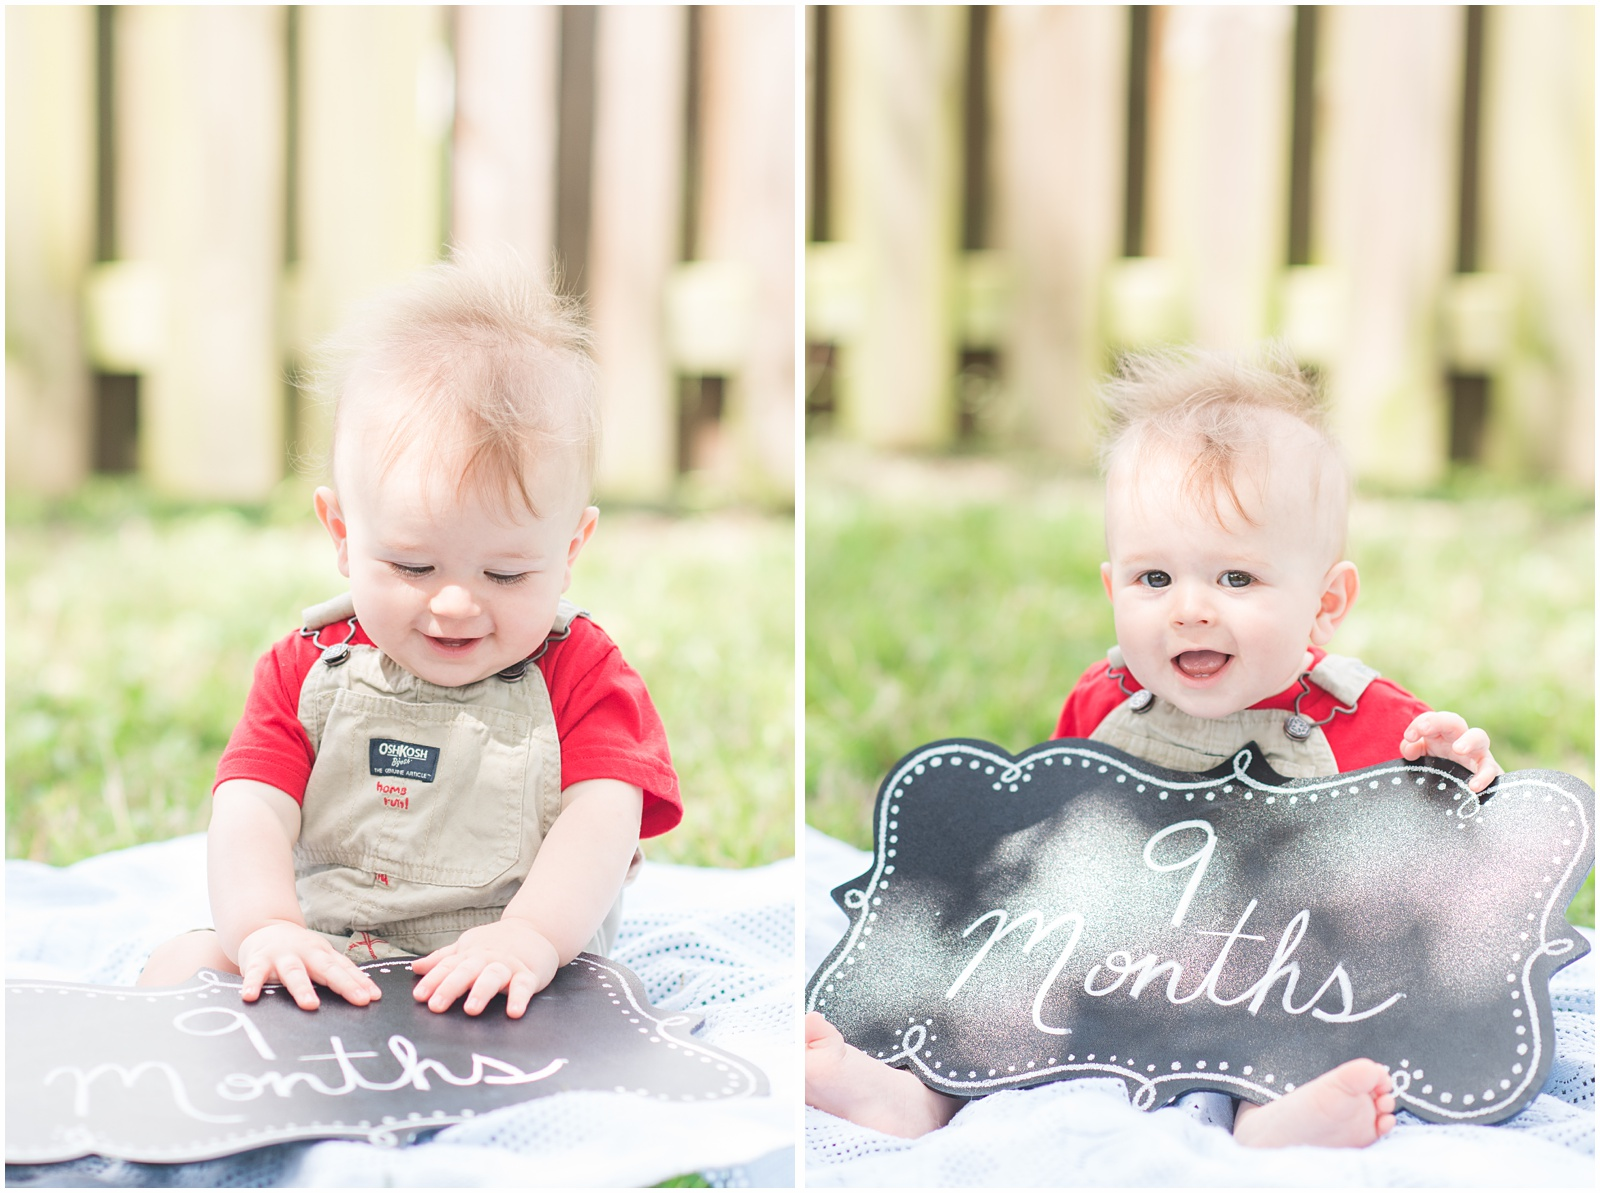 Baby_Portraits_9 Months_Family_Siblings_Growing Up_2.jpg